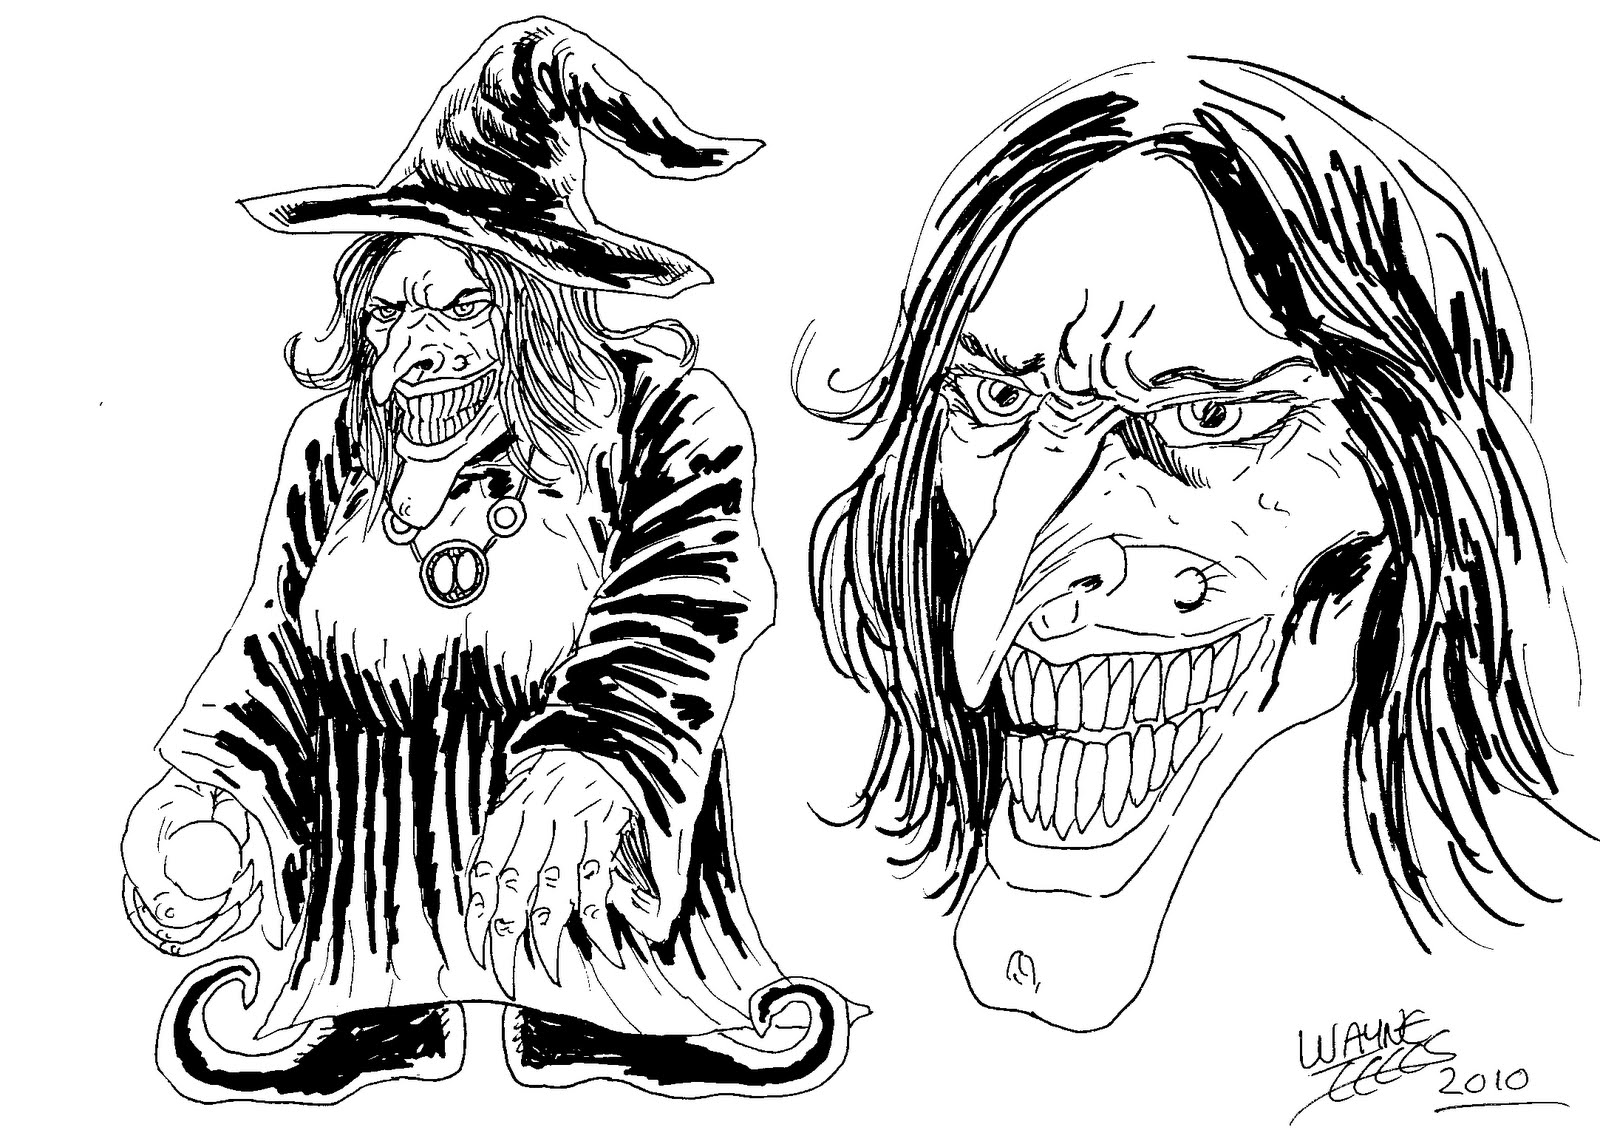 Halloweencostume1 further Halloweendecorations1 further Halloweencoloringpages4 additionally Weekly Drawing Drawing Old Hag Witch likewise Funny Gif Optical Illusion Balls Gif. on scary hag face